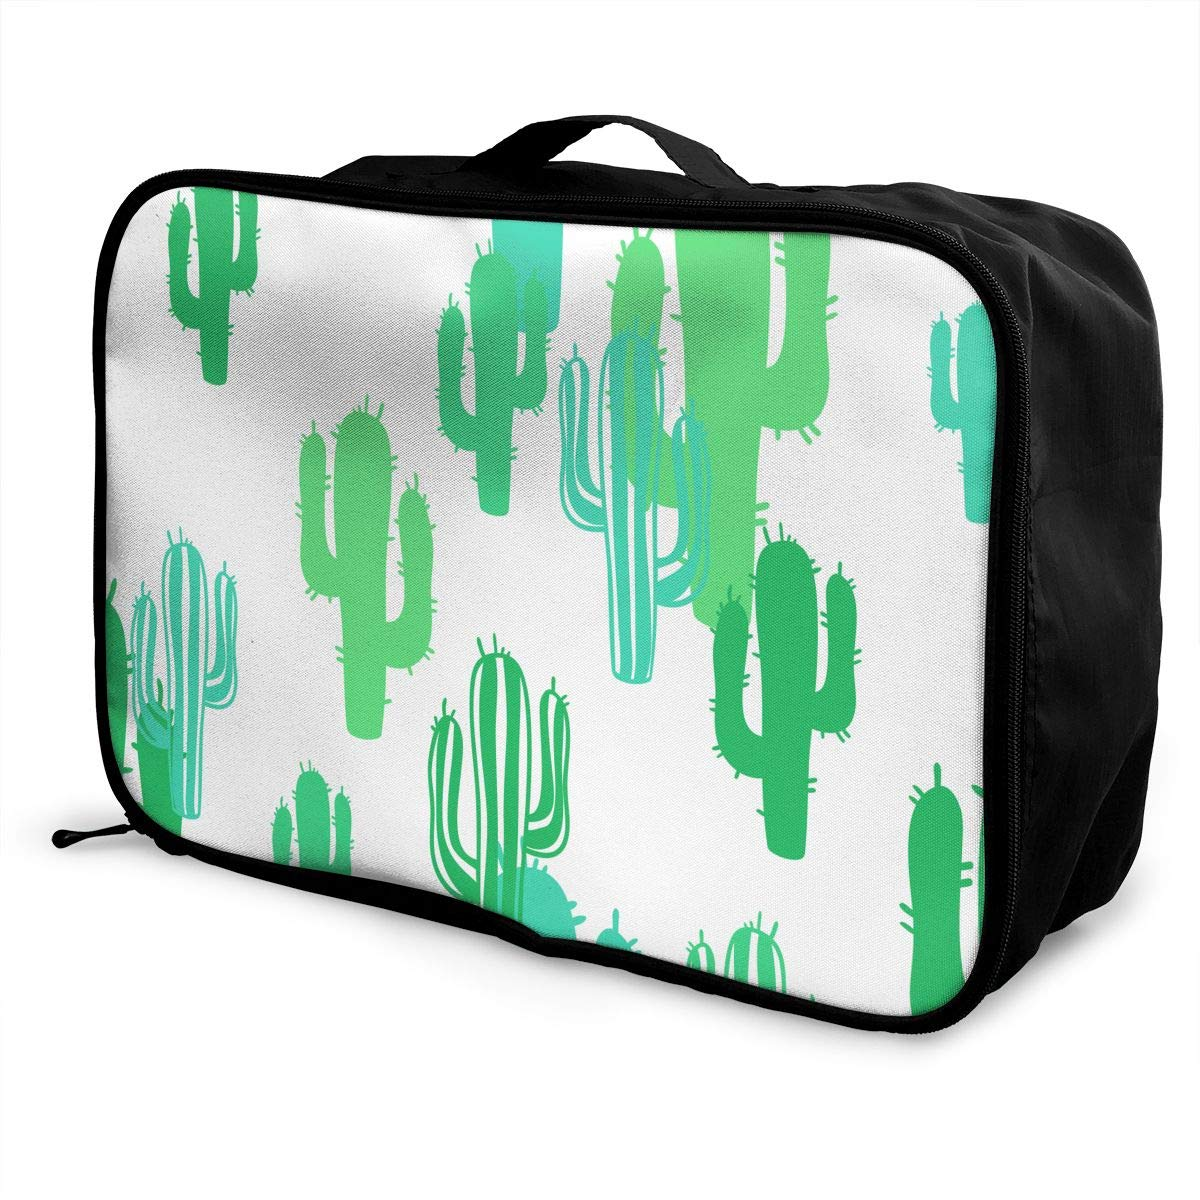 Travel Luggage Duffle Bag Lightweight Portable Handbag Green Cacti Pattern Large Capacity Waterproof Foldable Storage Tote